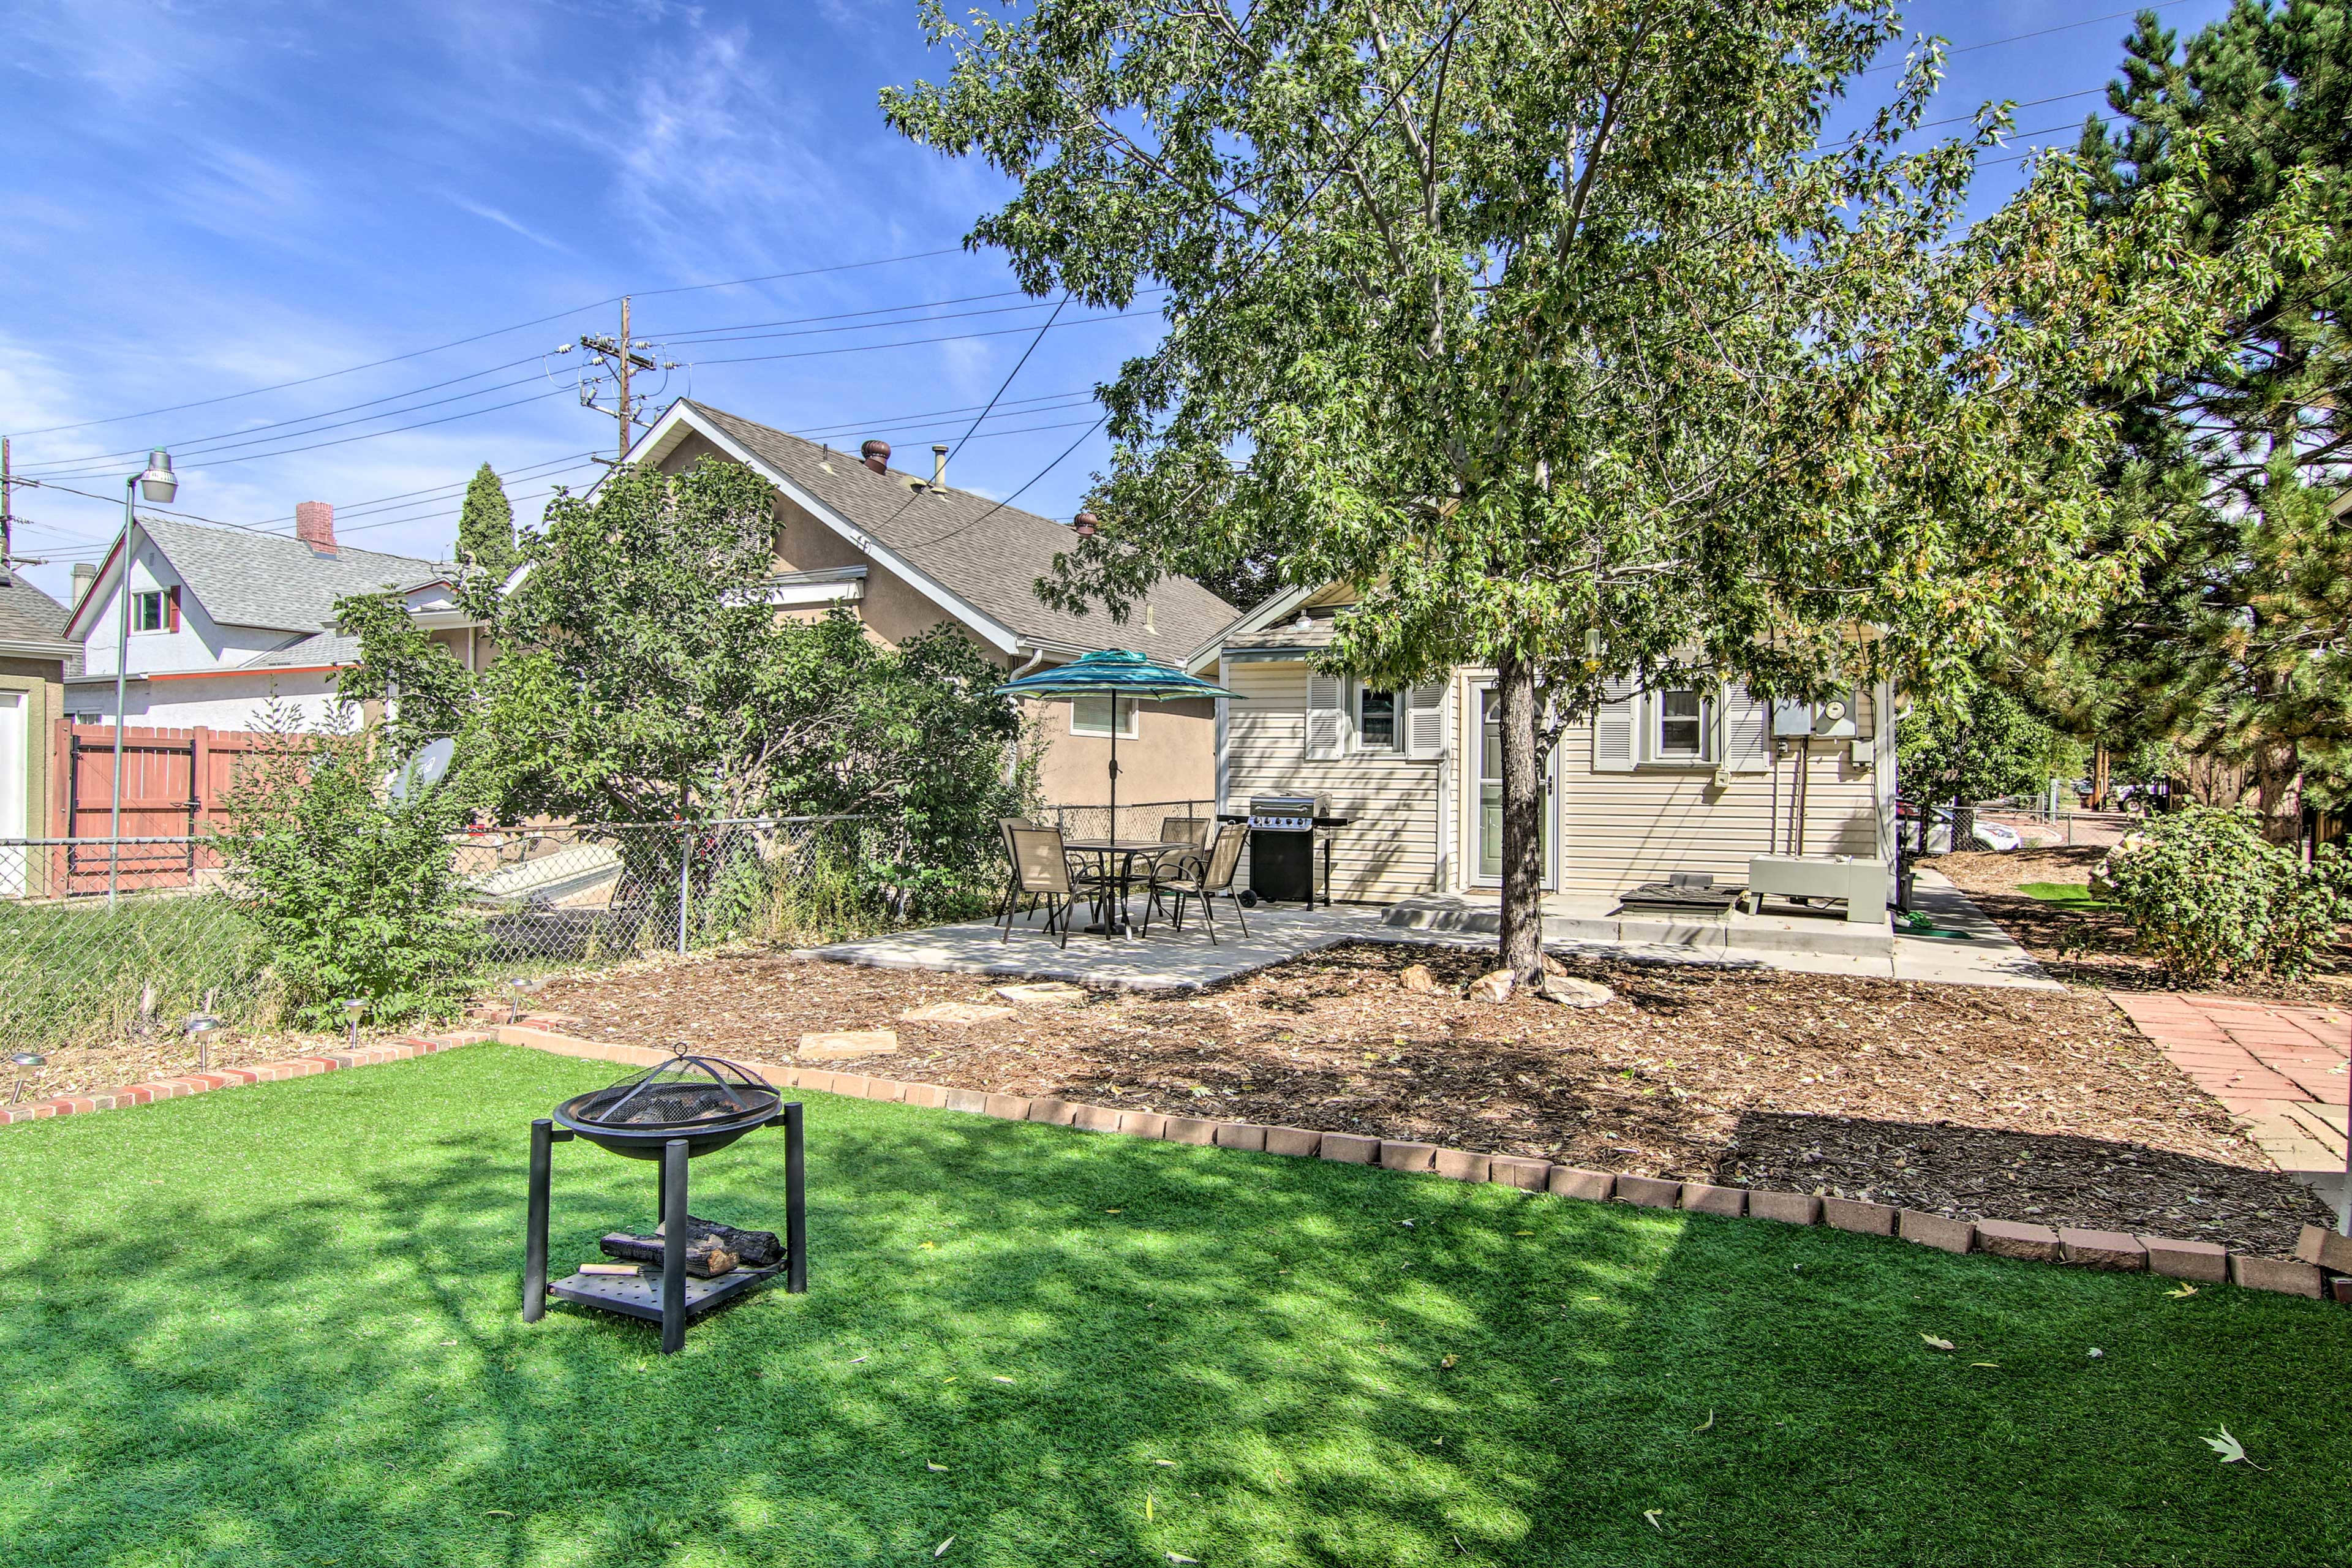 This home boasts a fire pit, gas grill, patio, and more.